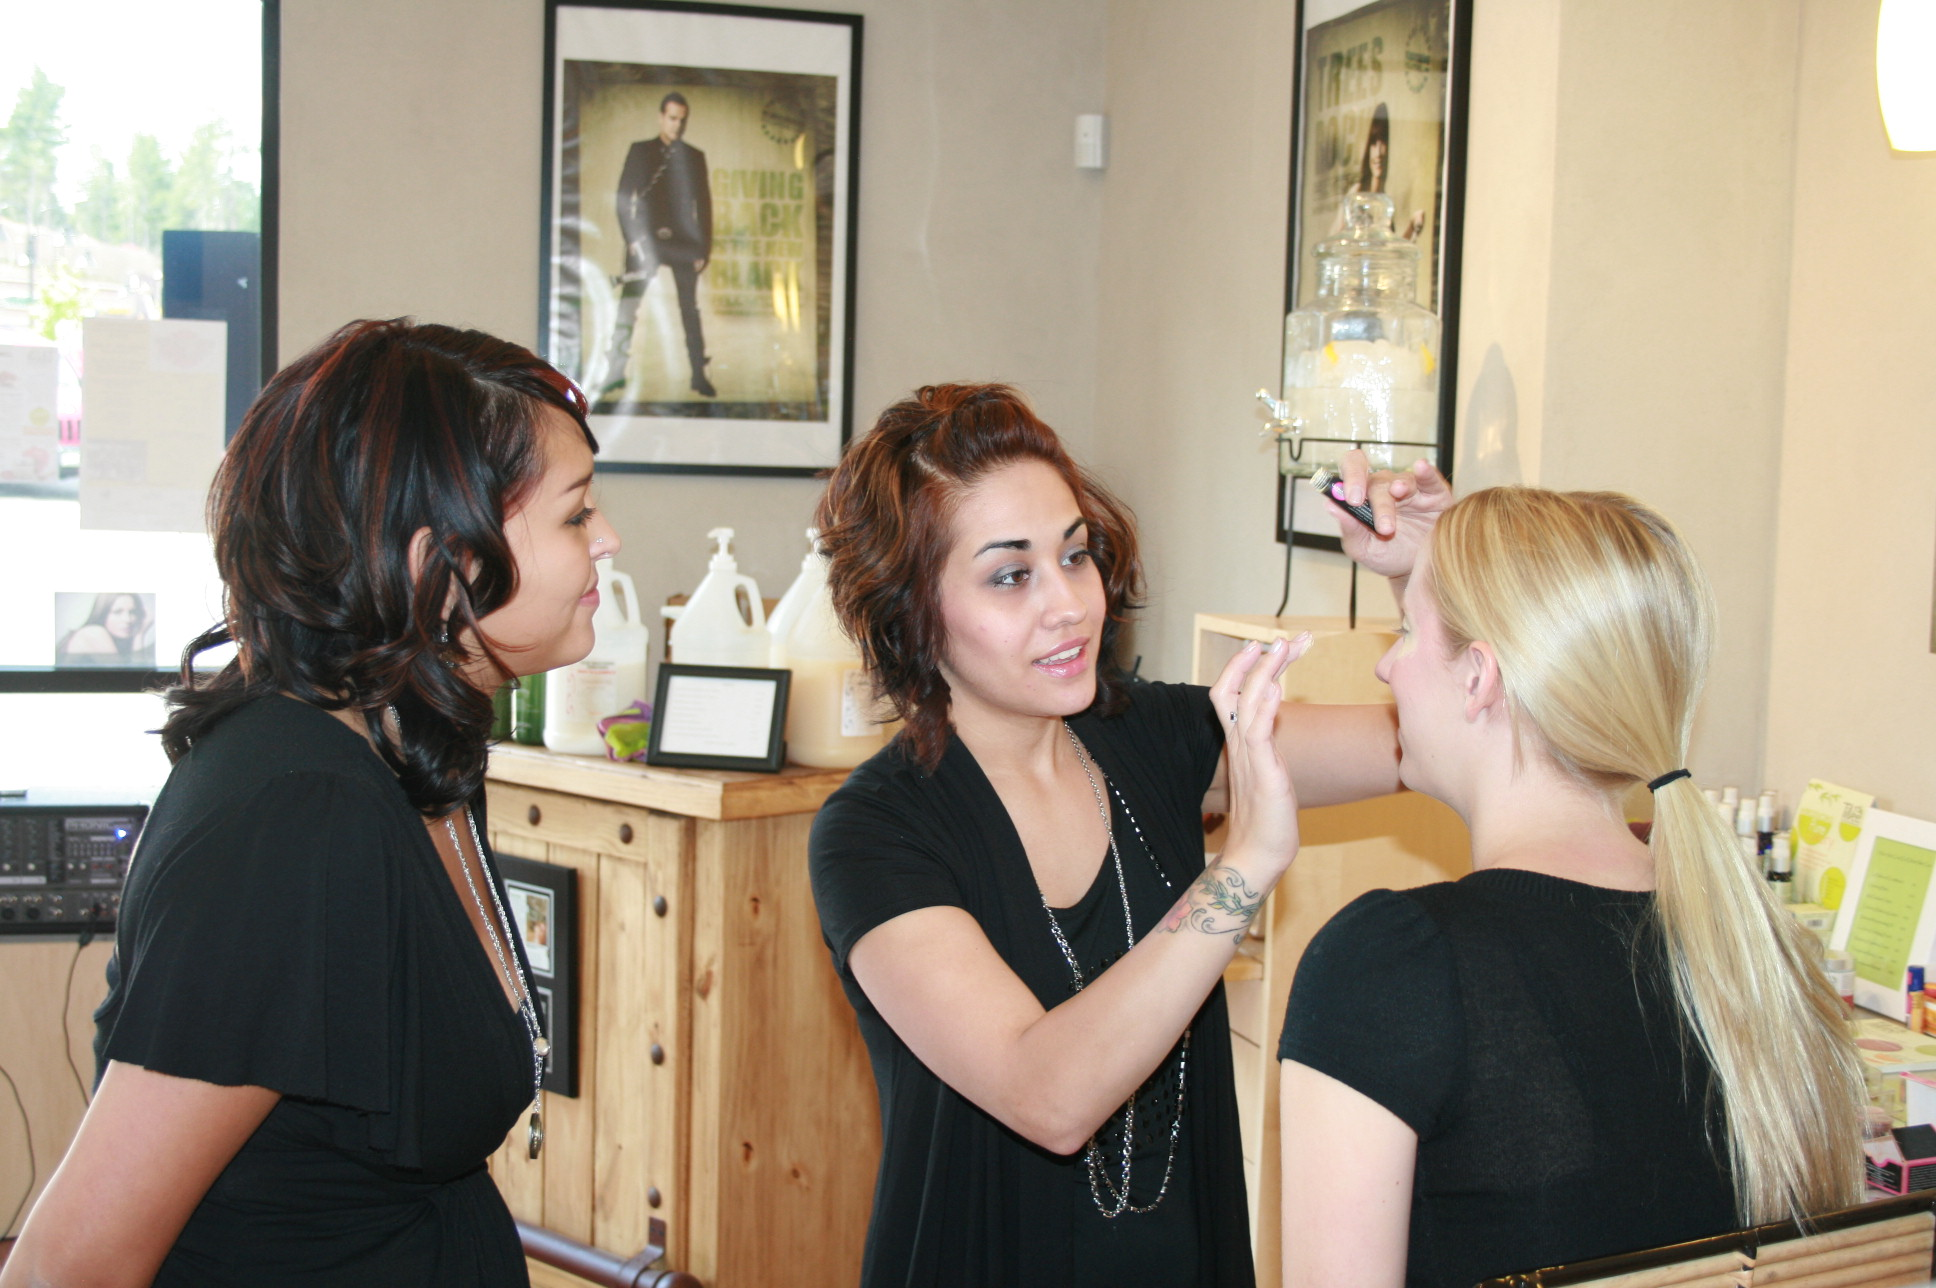 Splish's Veronica Potter applying makeup to Kristin McSherry, with Alyssa Romero looking on